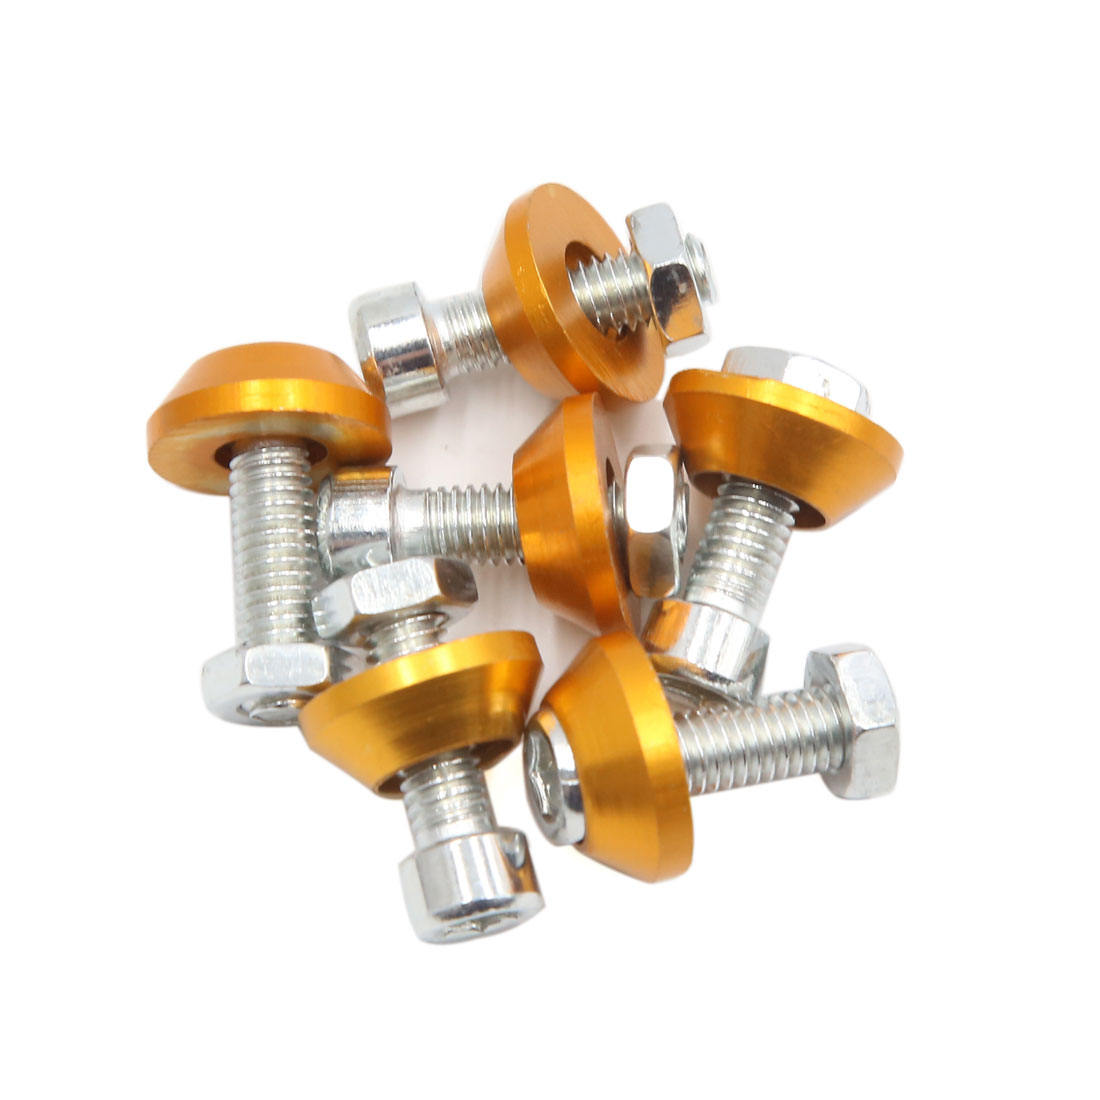 6pcs Gold Tone 6mm Thread Diameter Motorcycle License Plate Frame Screws Bolts Caps